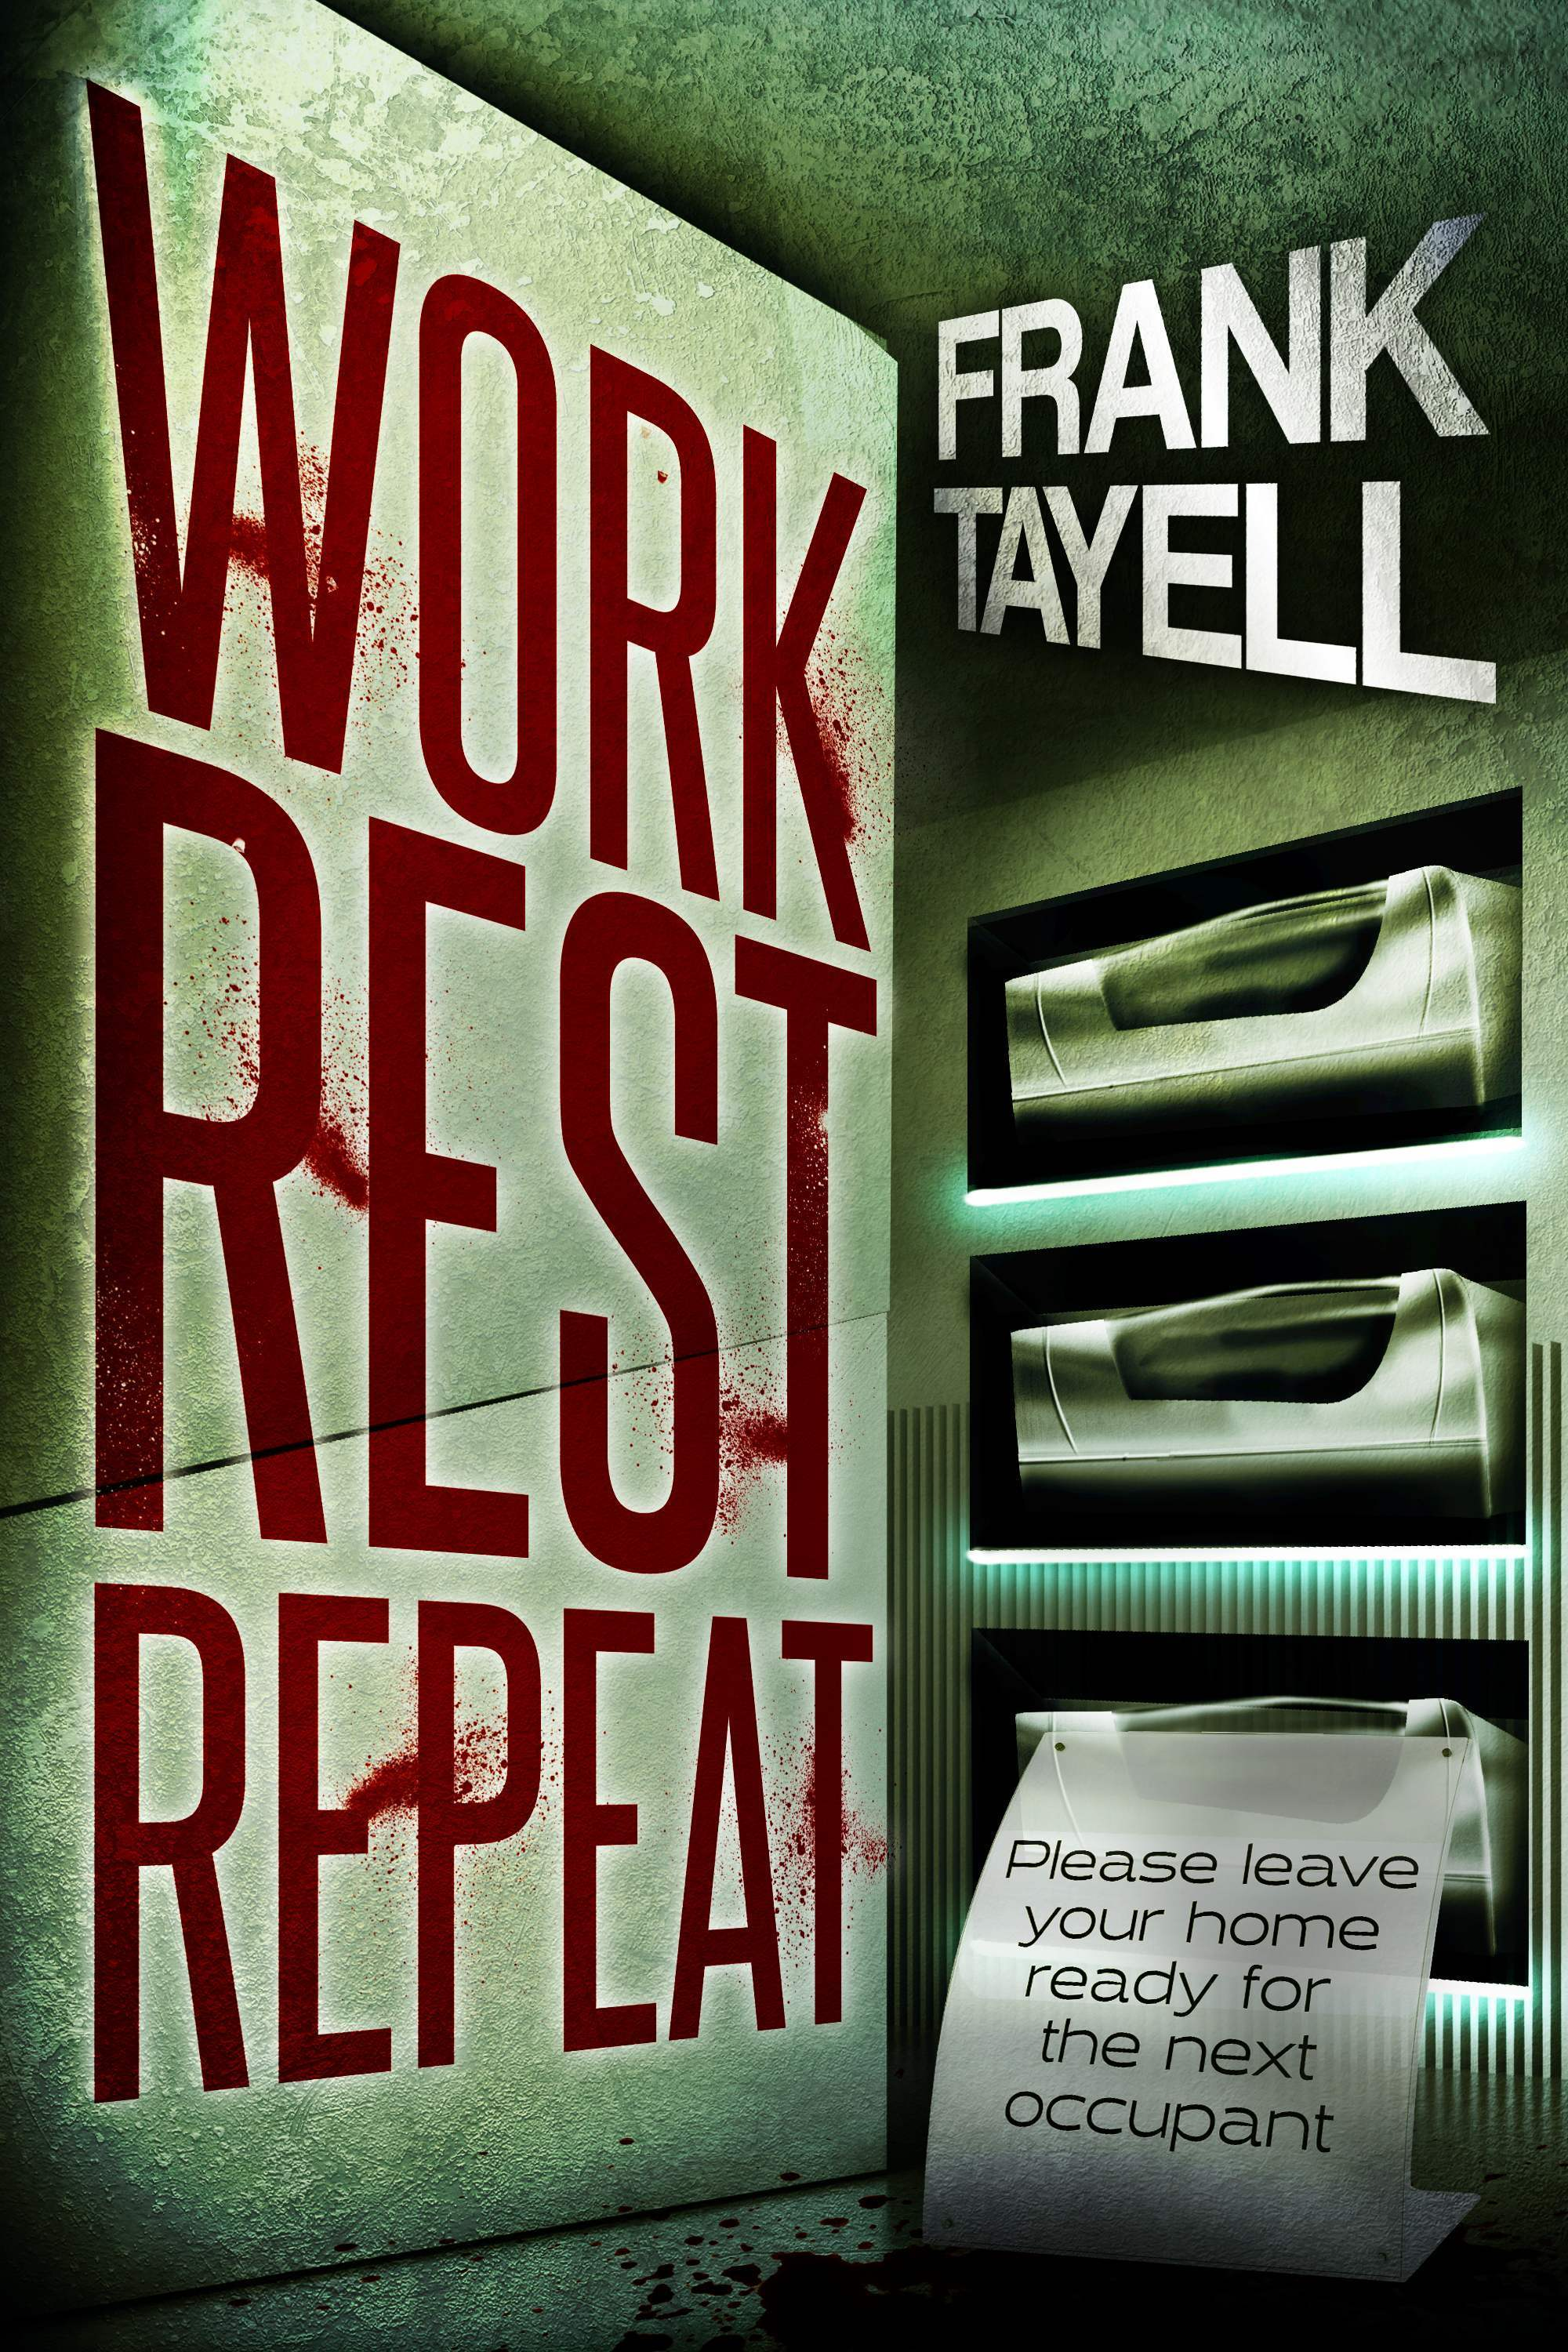 Work. Rest. Repeat. A Post Apocalyptic Detective Novel Frank Tayell